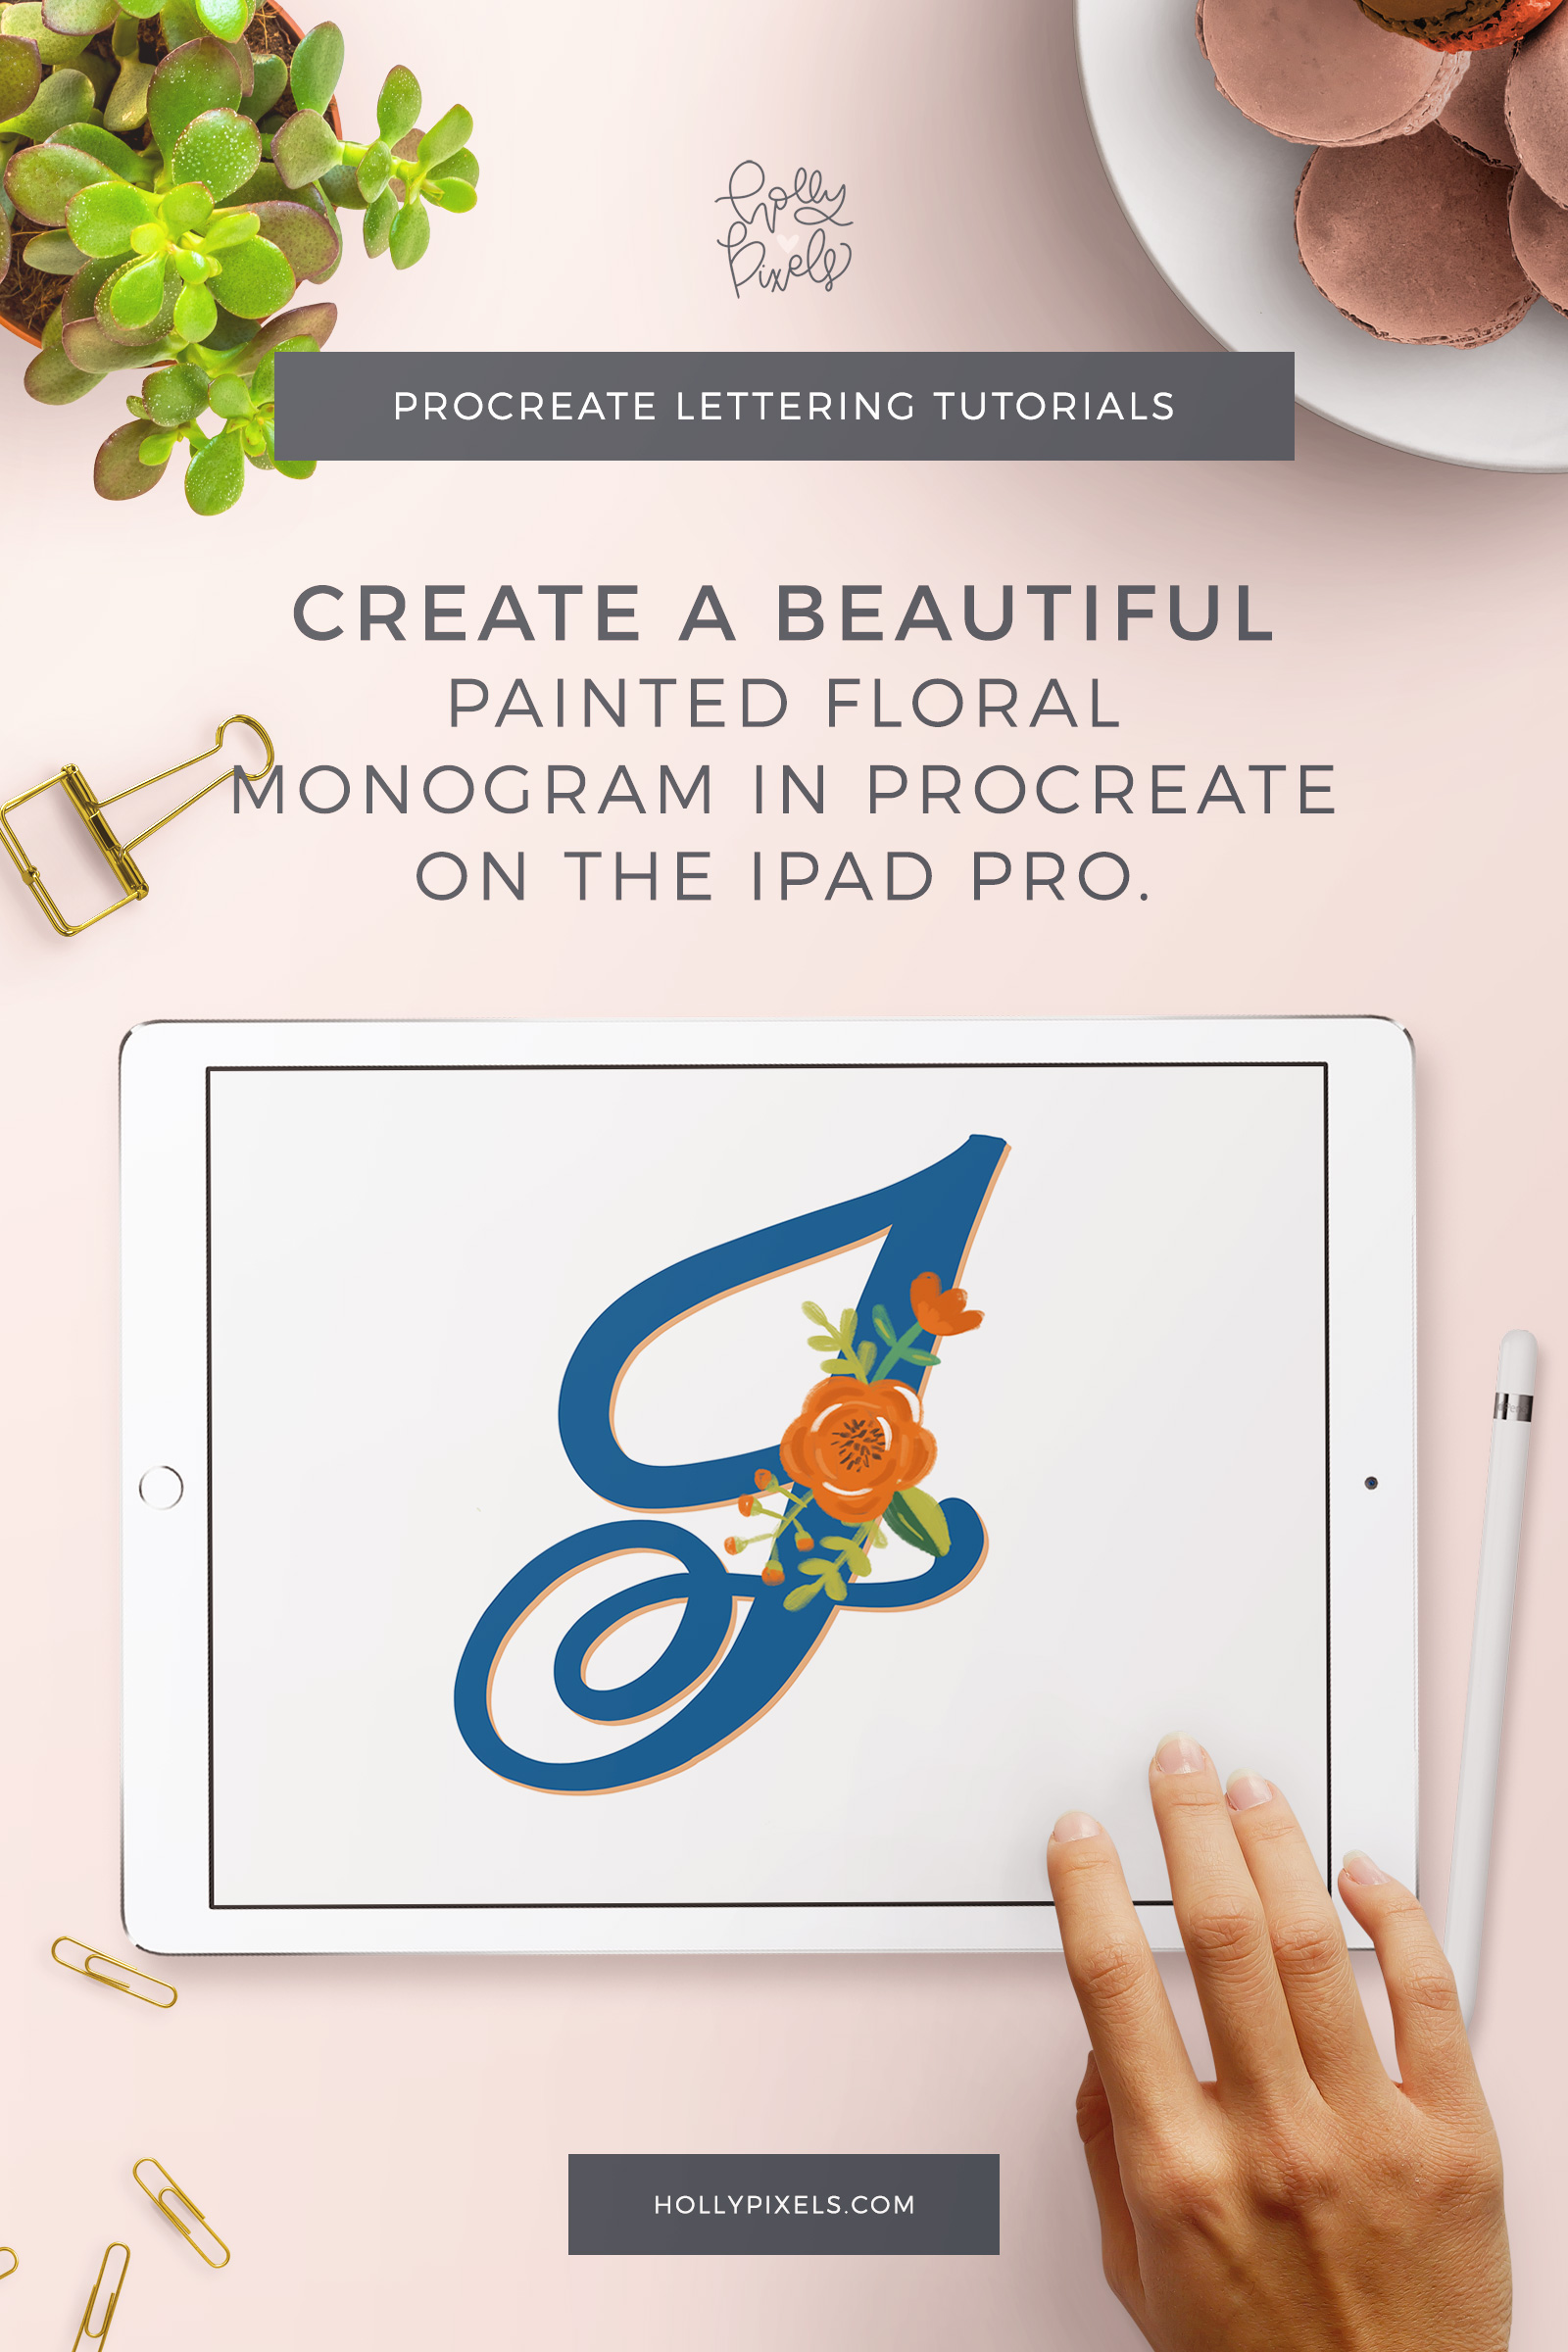 This week I'm going to show you how to create painted floral monograms in Procreate. Anyone can learn brush lettering. But that can be real boring real fast. To stand out in the crowd of lettering artists you should be learning new skills and techniques. This technique is super easy, creative, and fun.